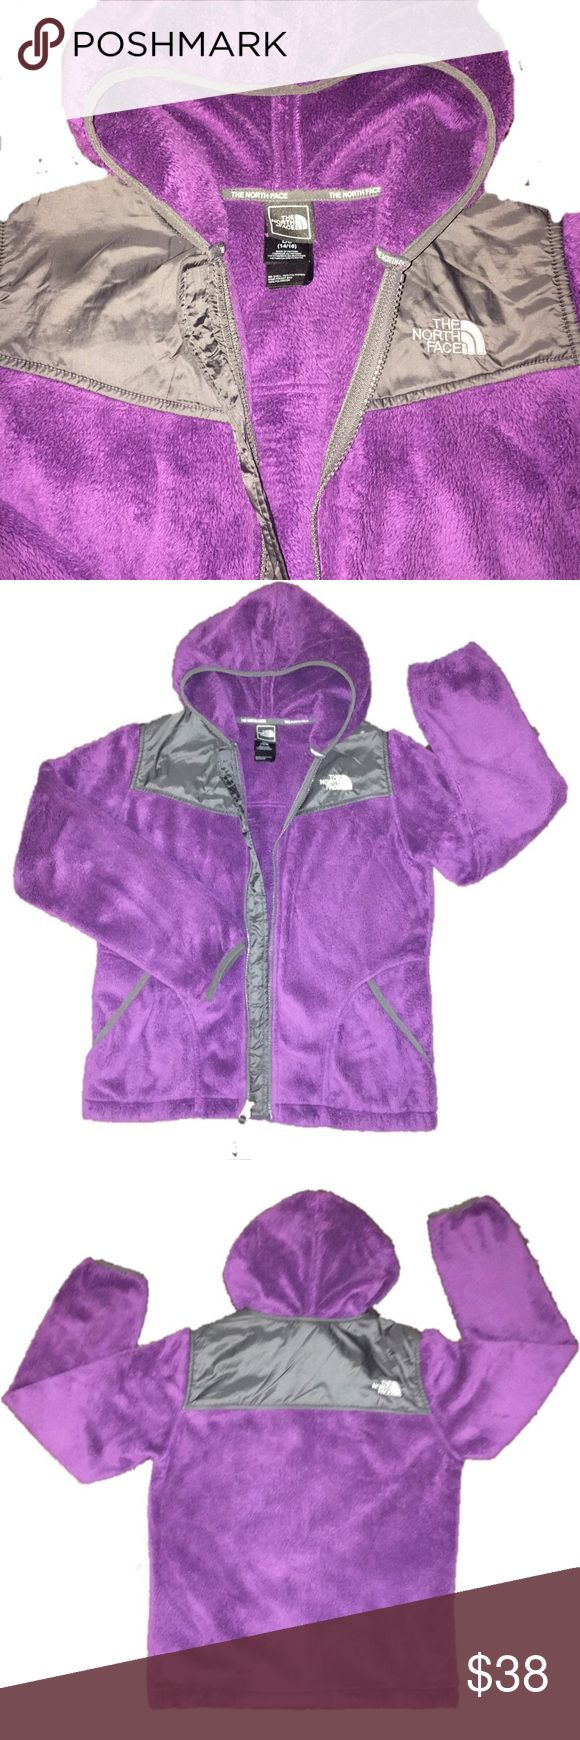 The North Face Thermal Denali Jacket Girls size L(14/16) which also fits like an adult XS. In very good condition. The North Face Jackets & Coats